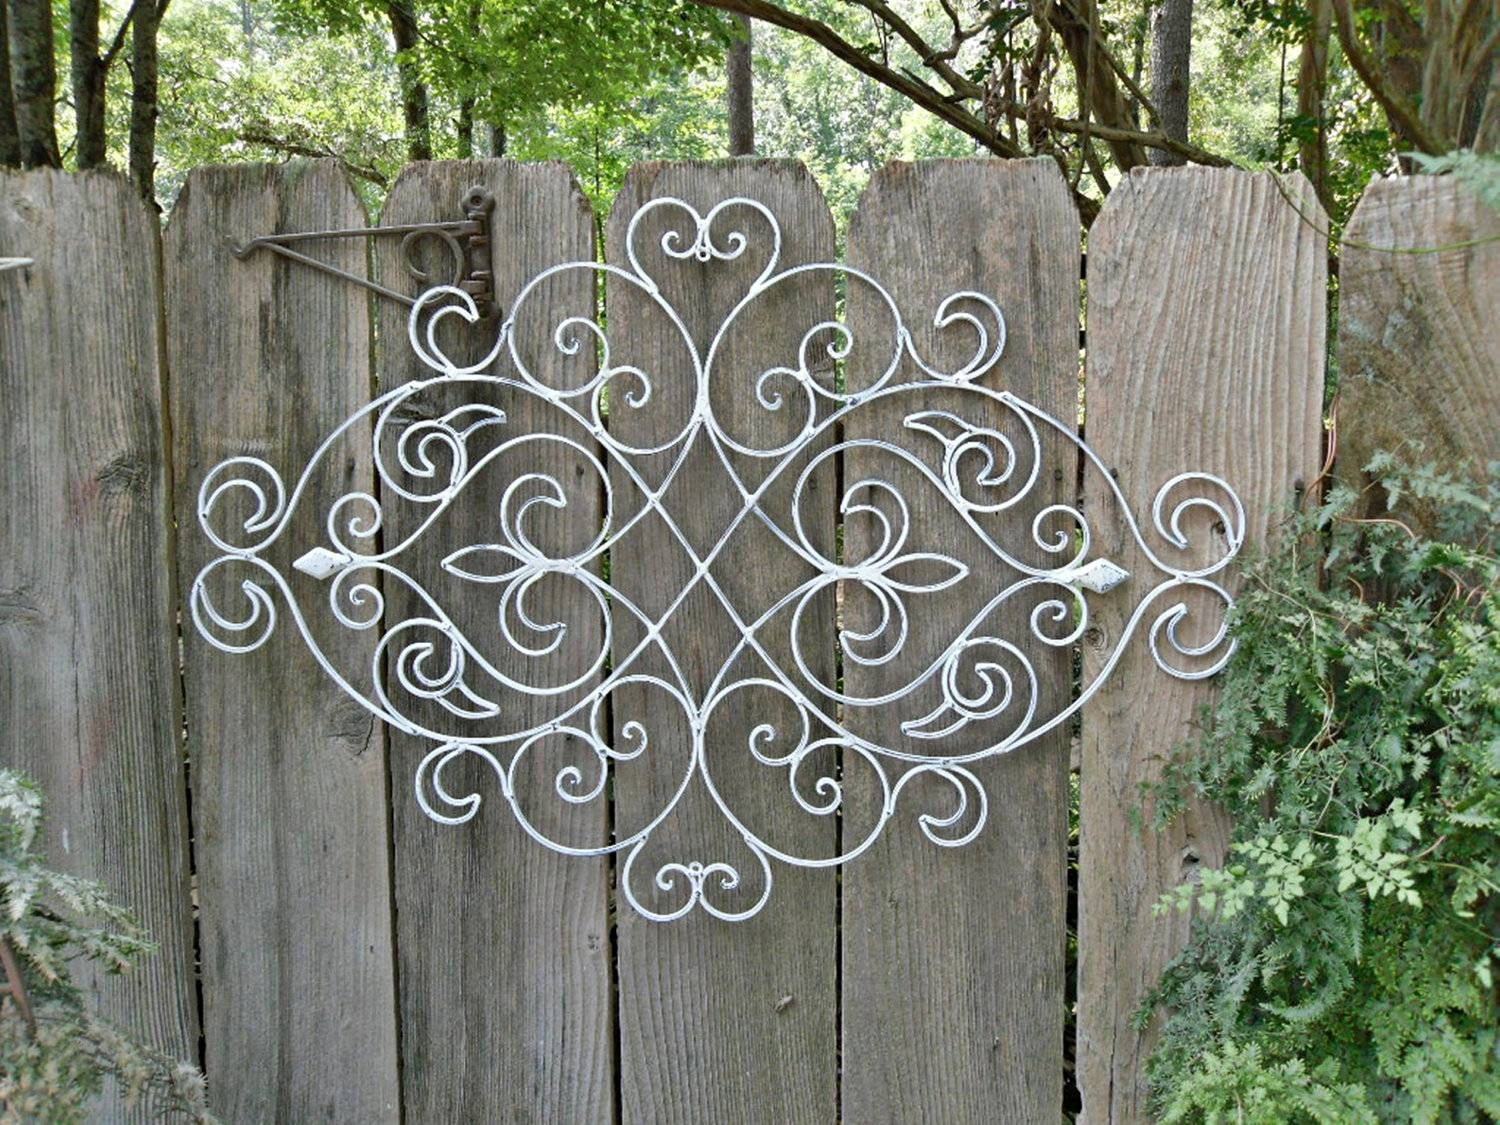 Ergonomic Metal Garden Gate Wall Decor Sculpture And Garden Art Inside Latest Metal Gate Wall Art (View 3 of 32)